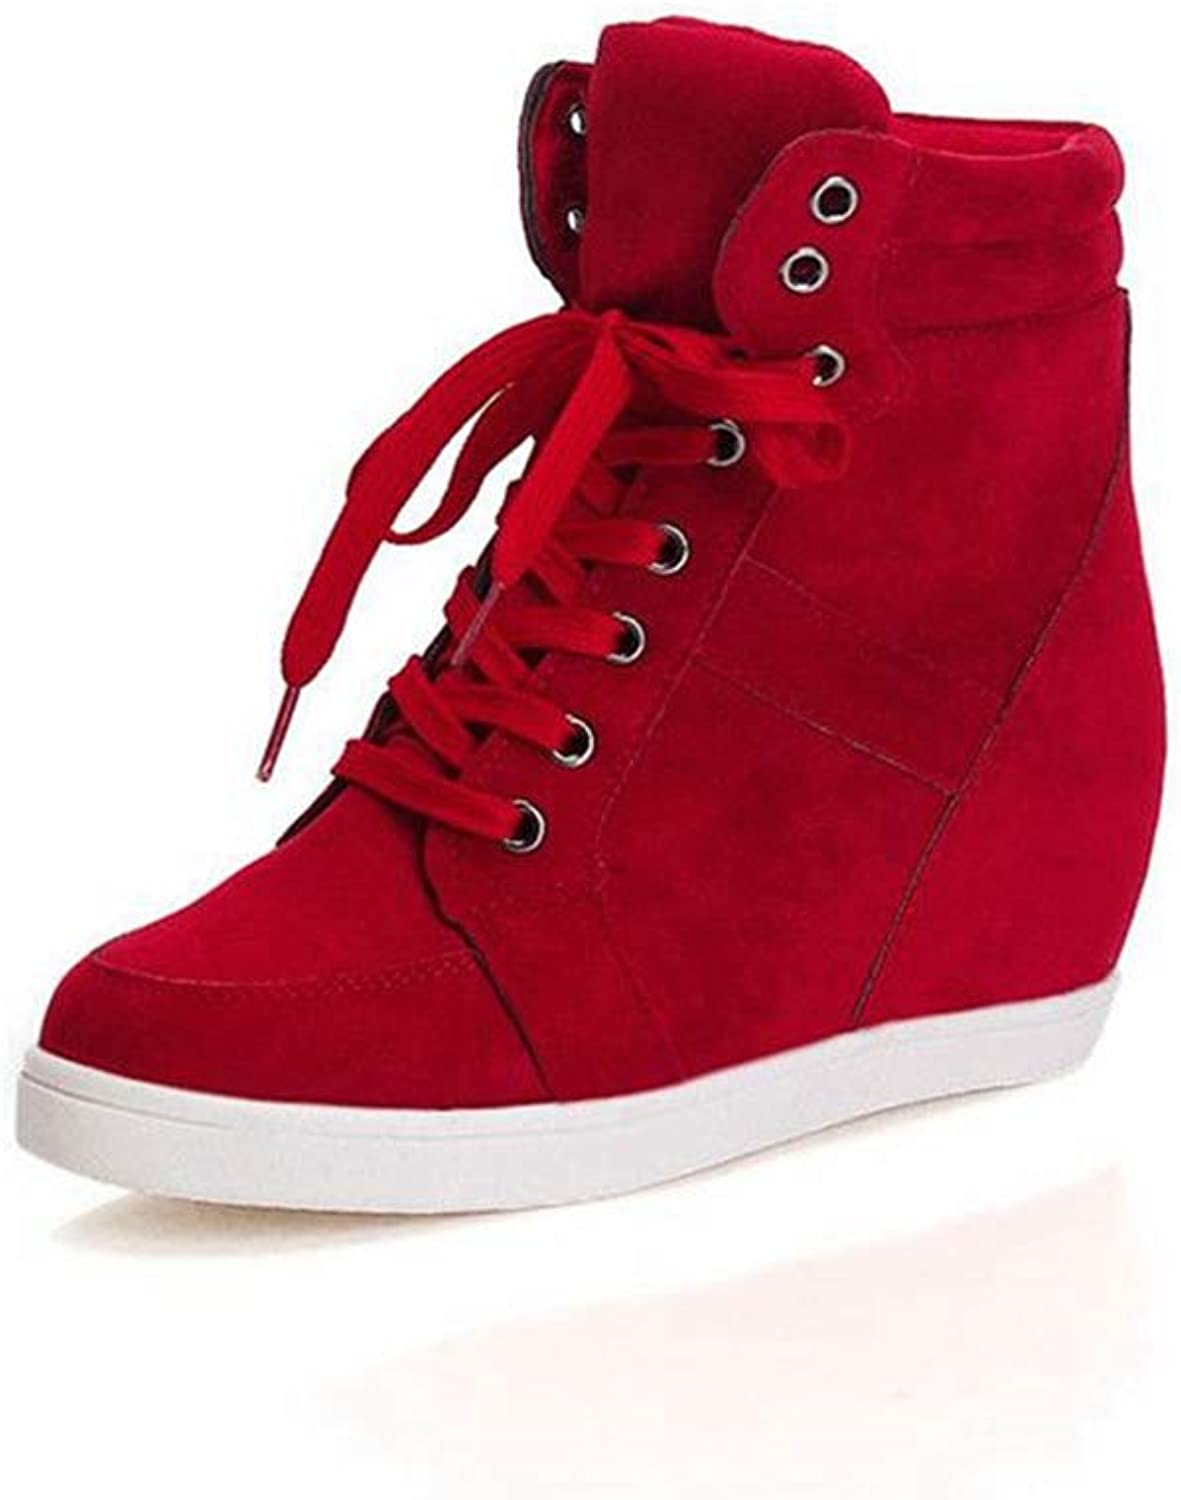 ASO-SLING Hidden Heel Wedge Sneakers Platform for Women Anti-Slip Lace-up Ankle Predection Walking shoes